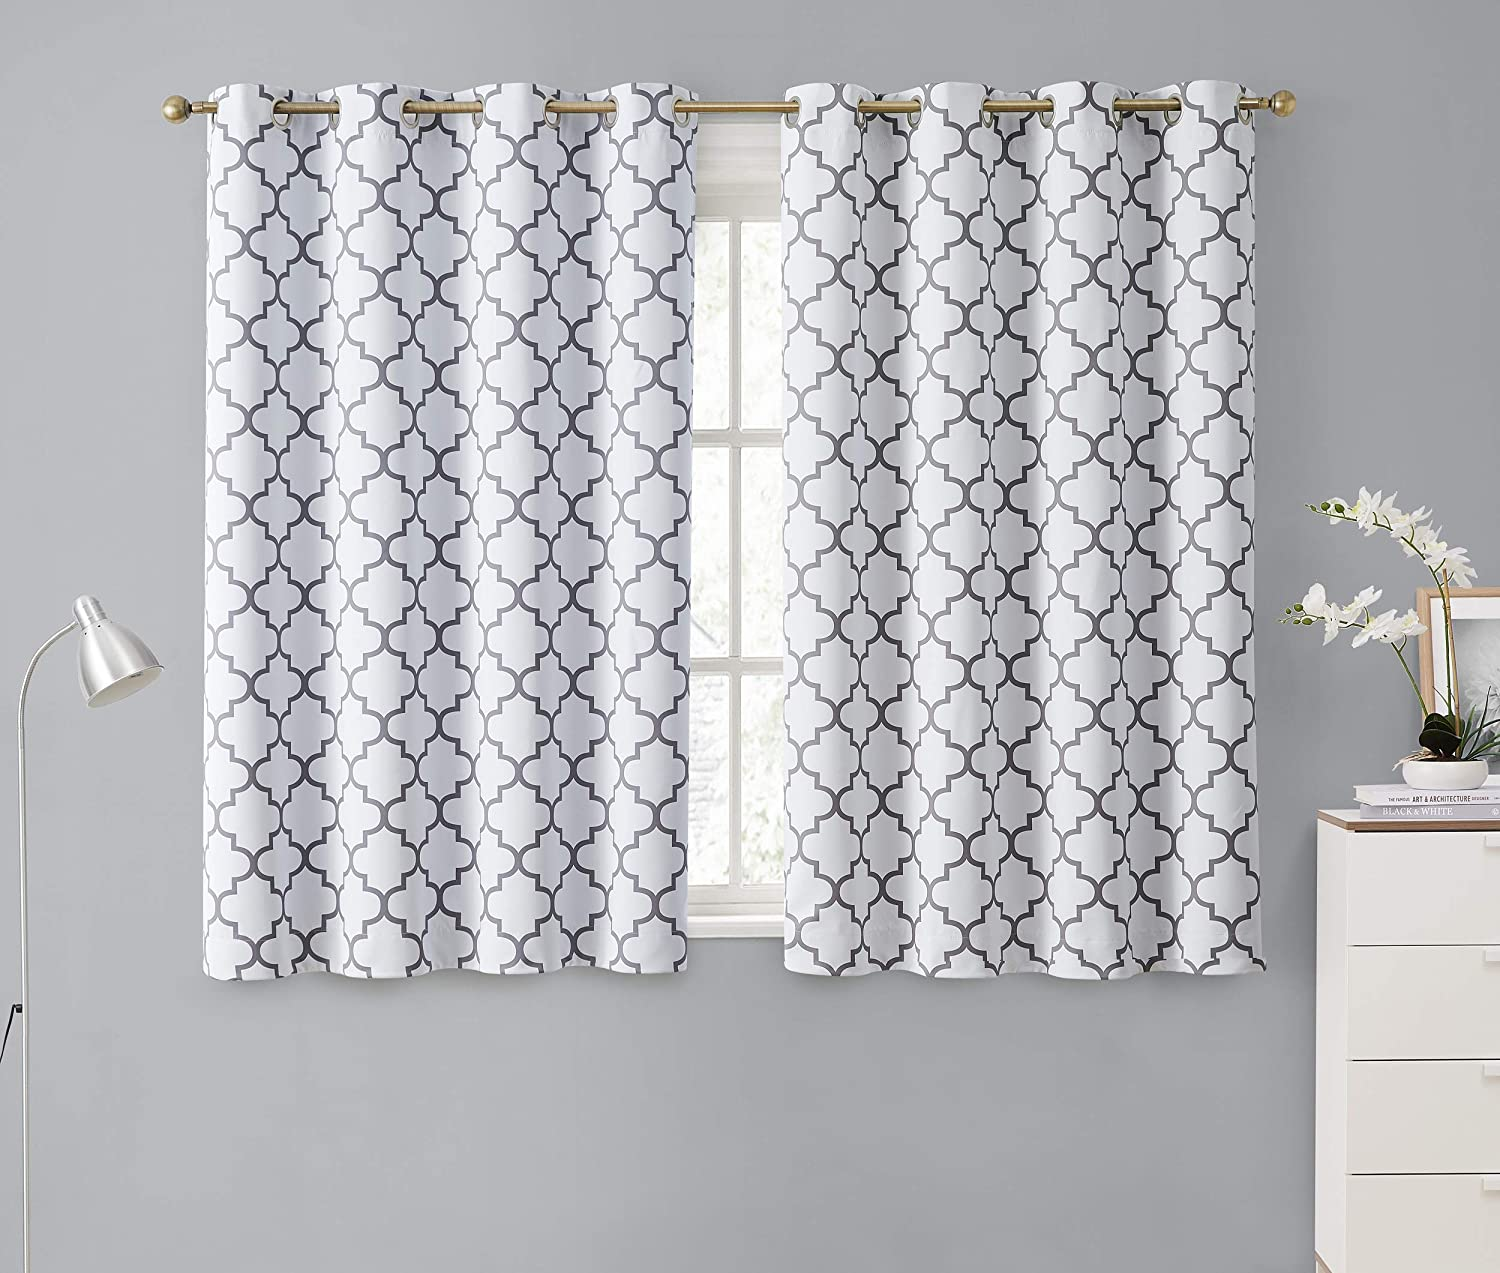 HLC.ME Lattice Print Decorative Blackout Thermal Insulated Privacy Room Darkening Grommet Window Drapes Curtain Panels for Bedroom - Platinum White & Grey - Set of 2-52 x 45 Inch Length